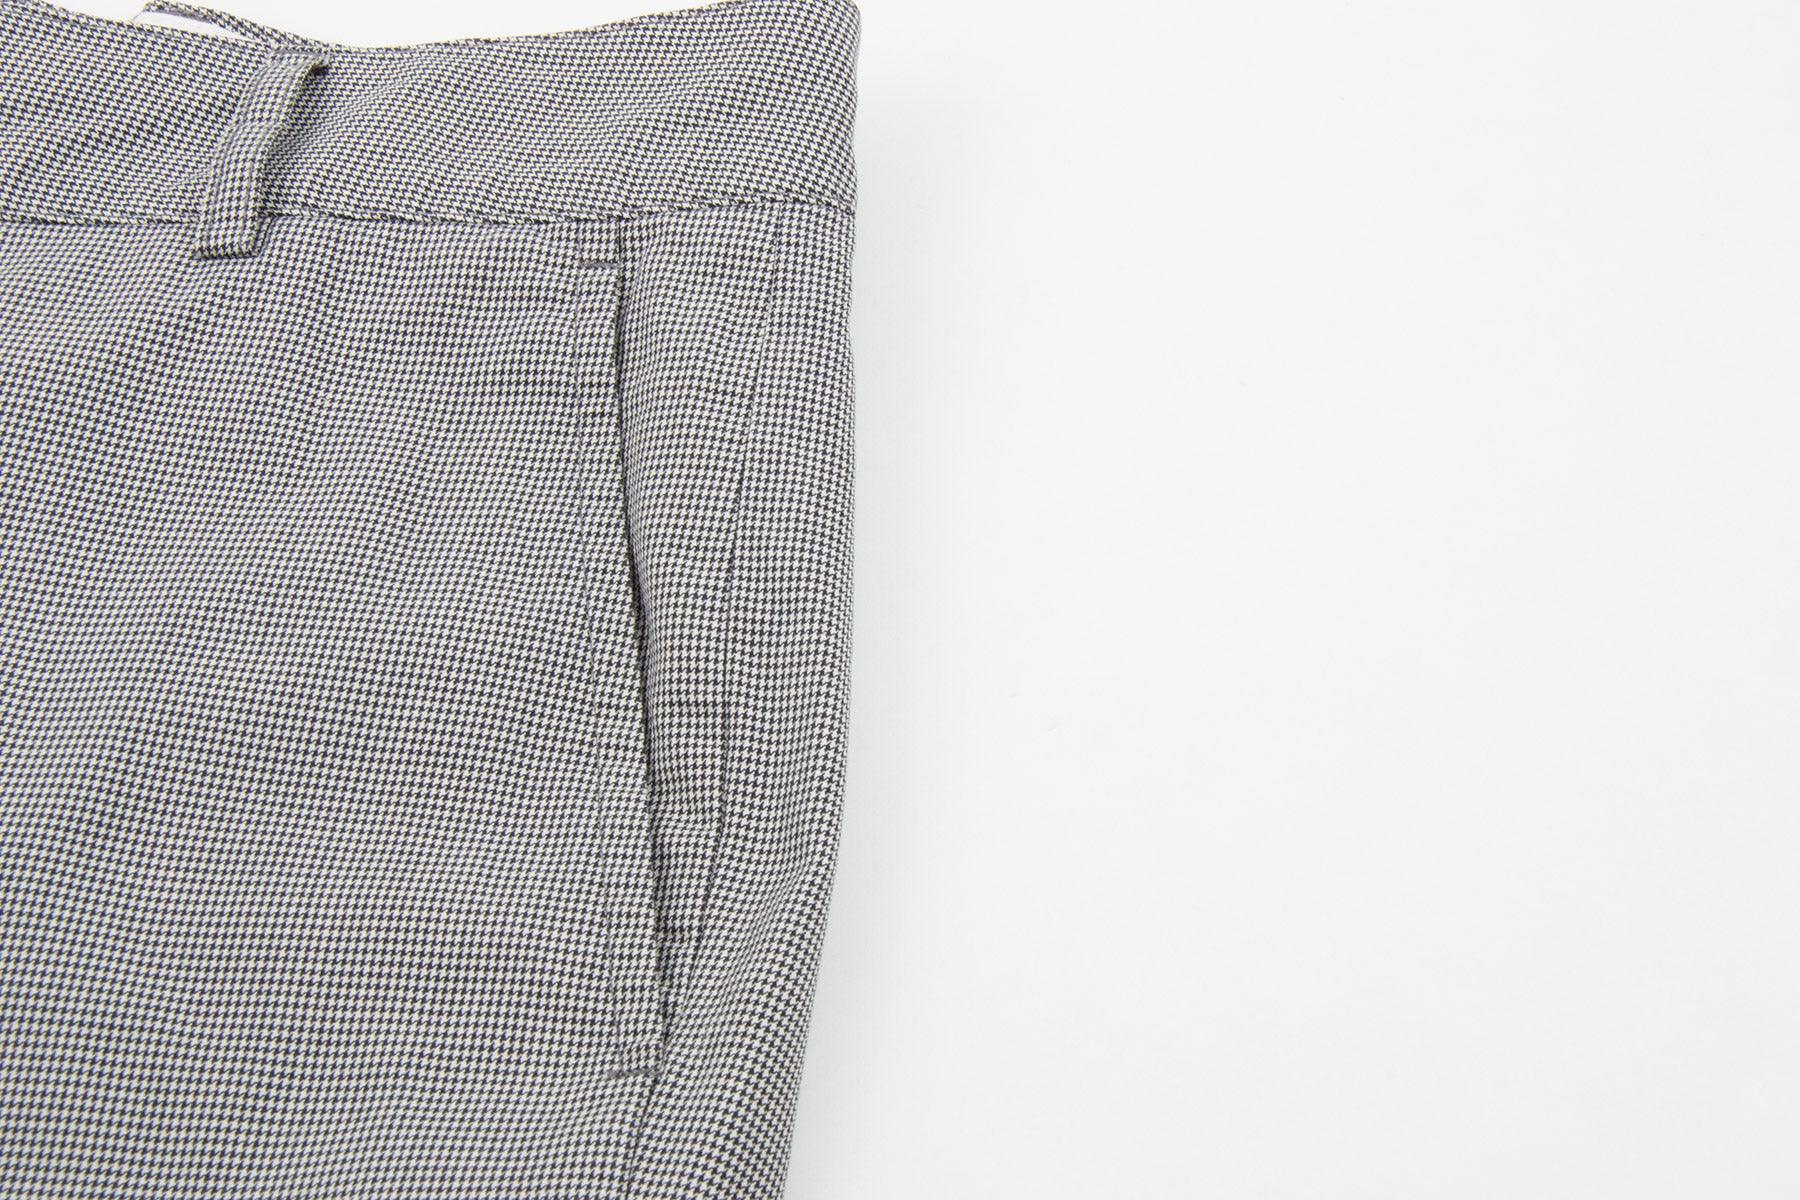 2002 S/S ANATOMICAL TROUSERS IN MICRO HOUNDS-TOOTH COTTON